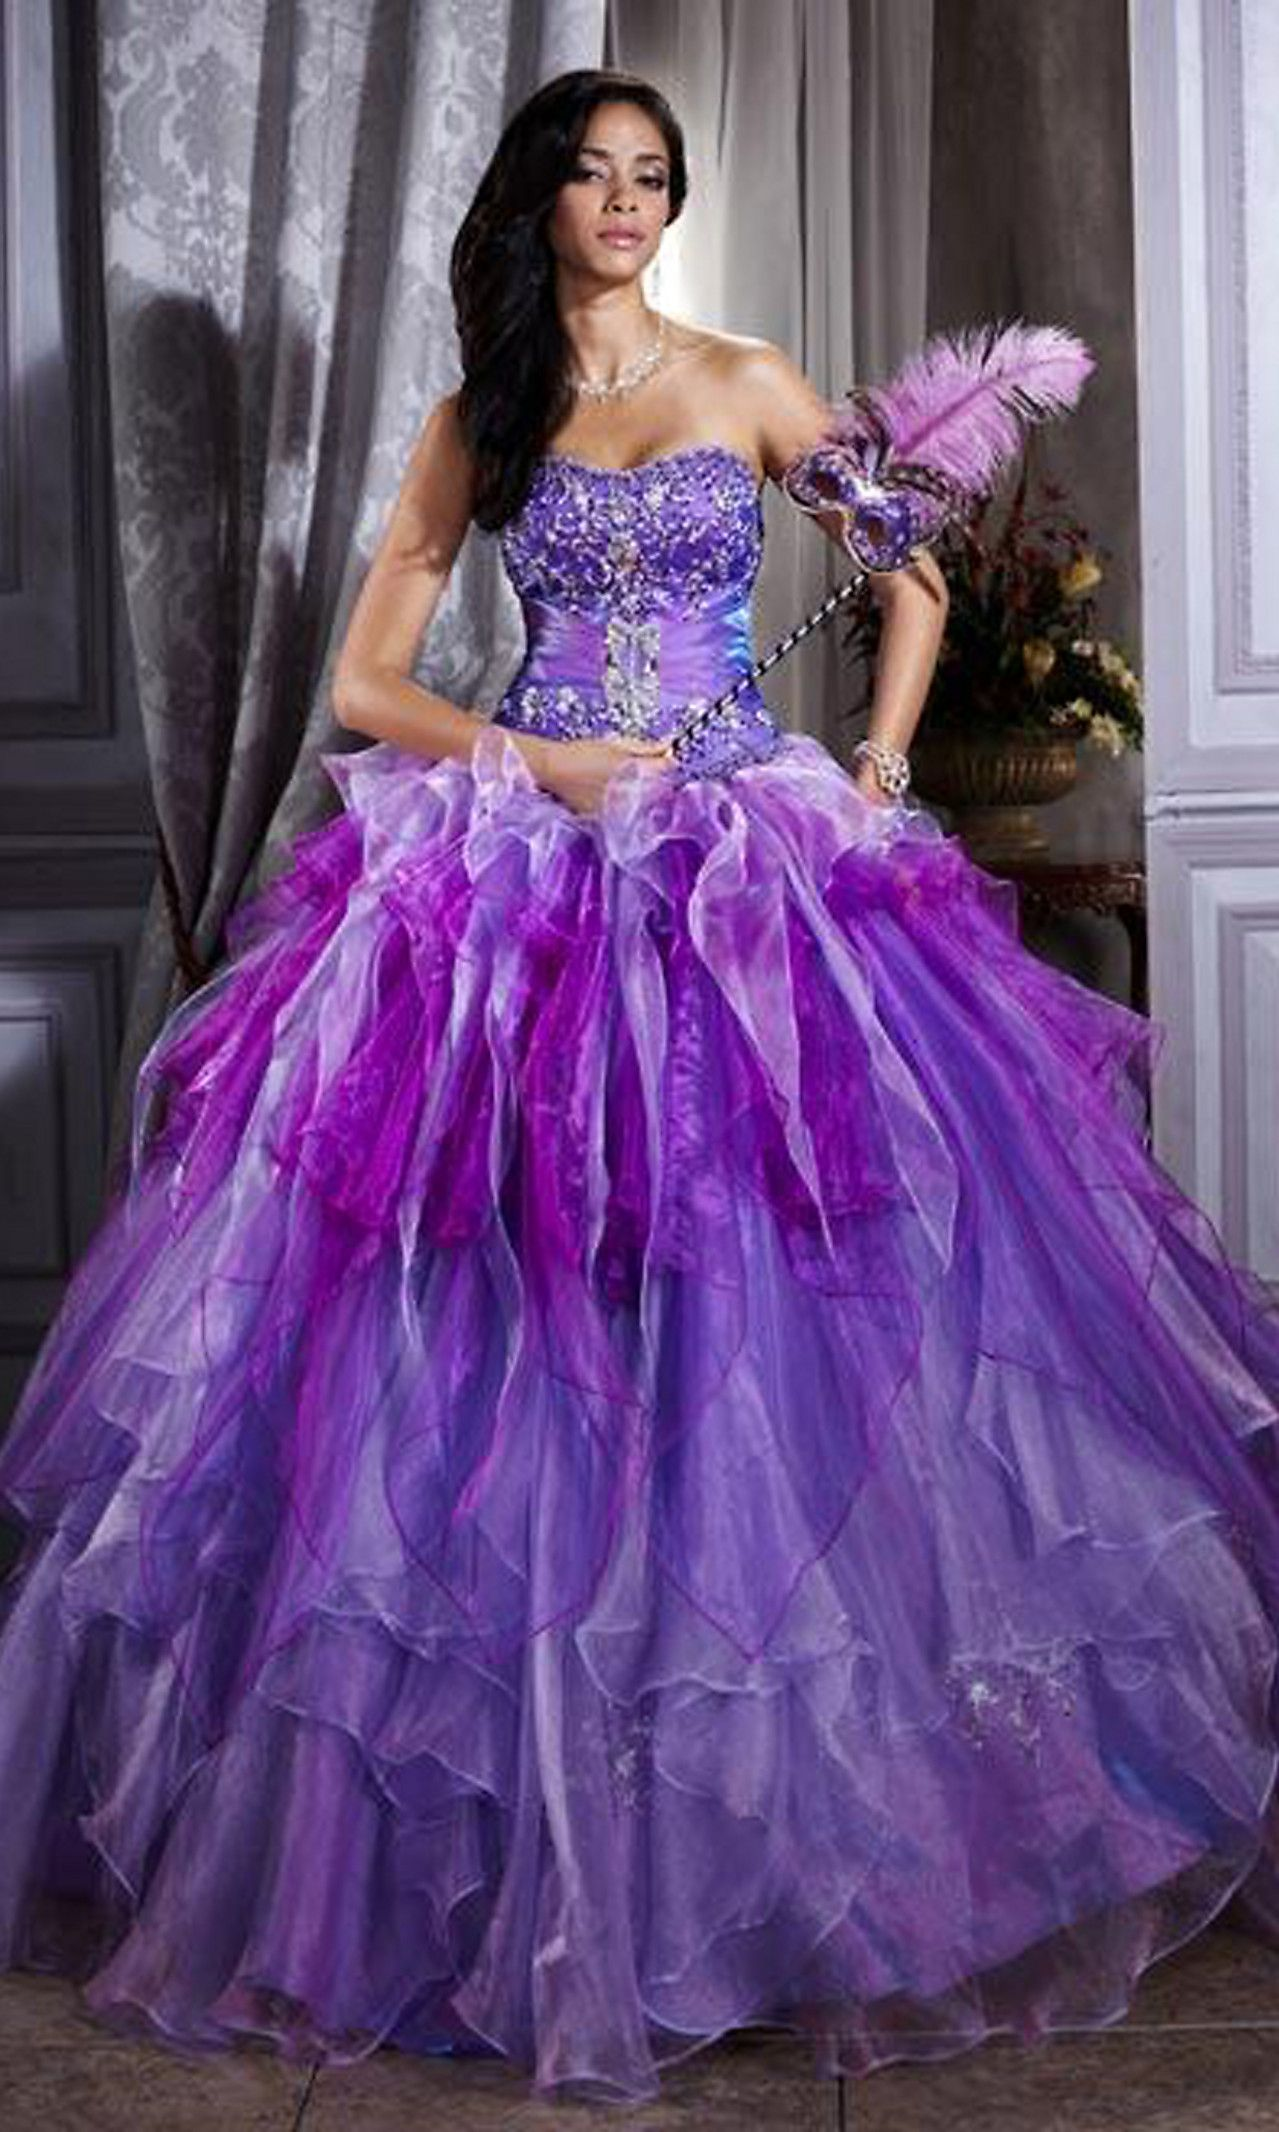 Mascarade gown masquerade dresses quince dresses gowns